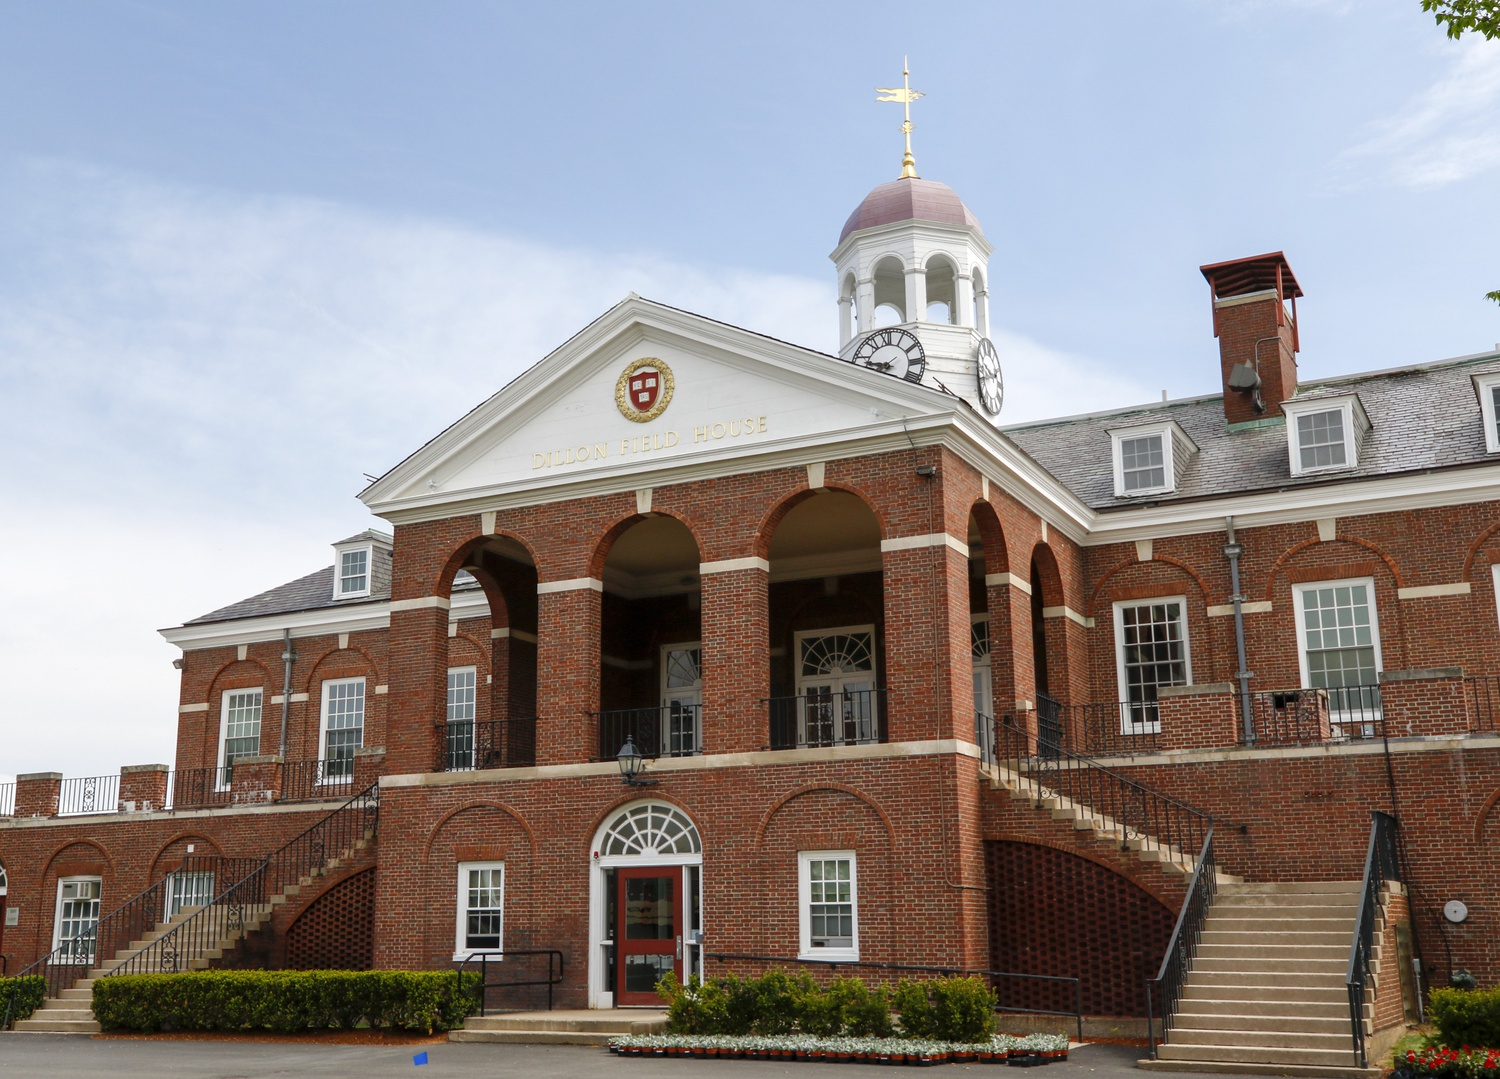 Dillon Field House contains facilities and offices that supports Harvard athletics. Student athletes living on campus were allowed to resume sport-specific training Monday.